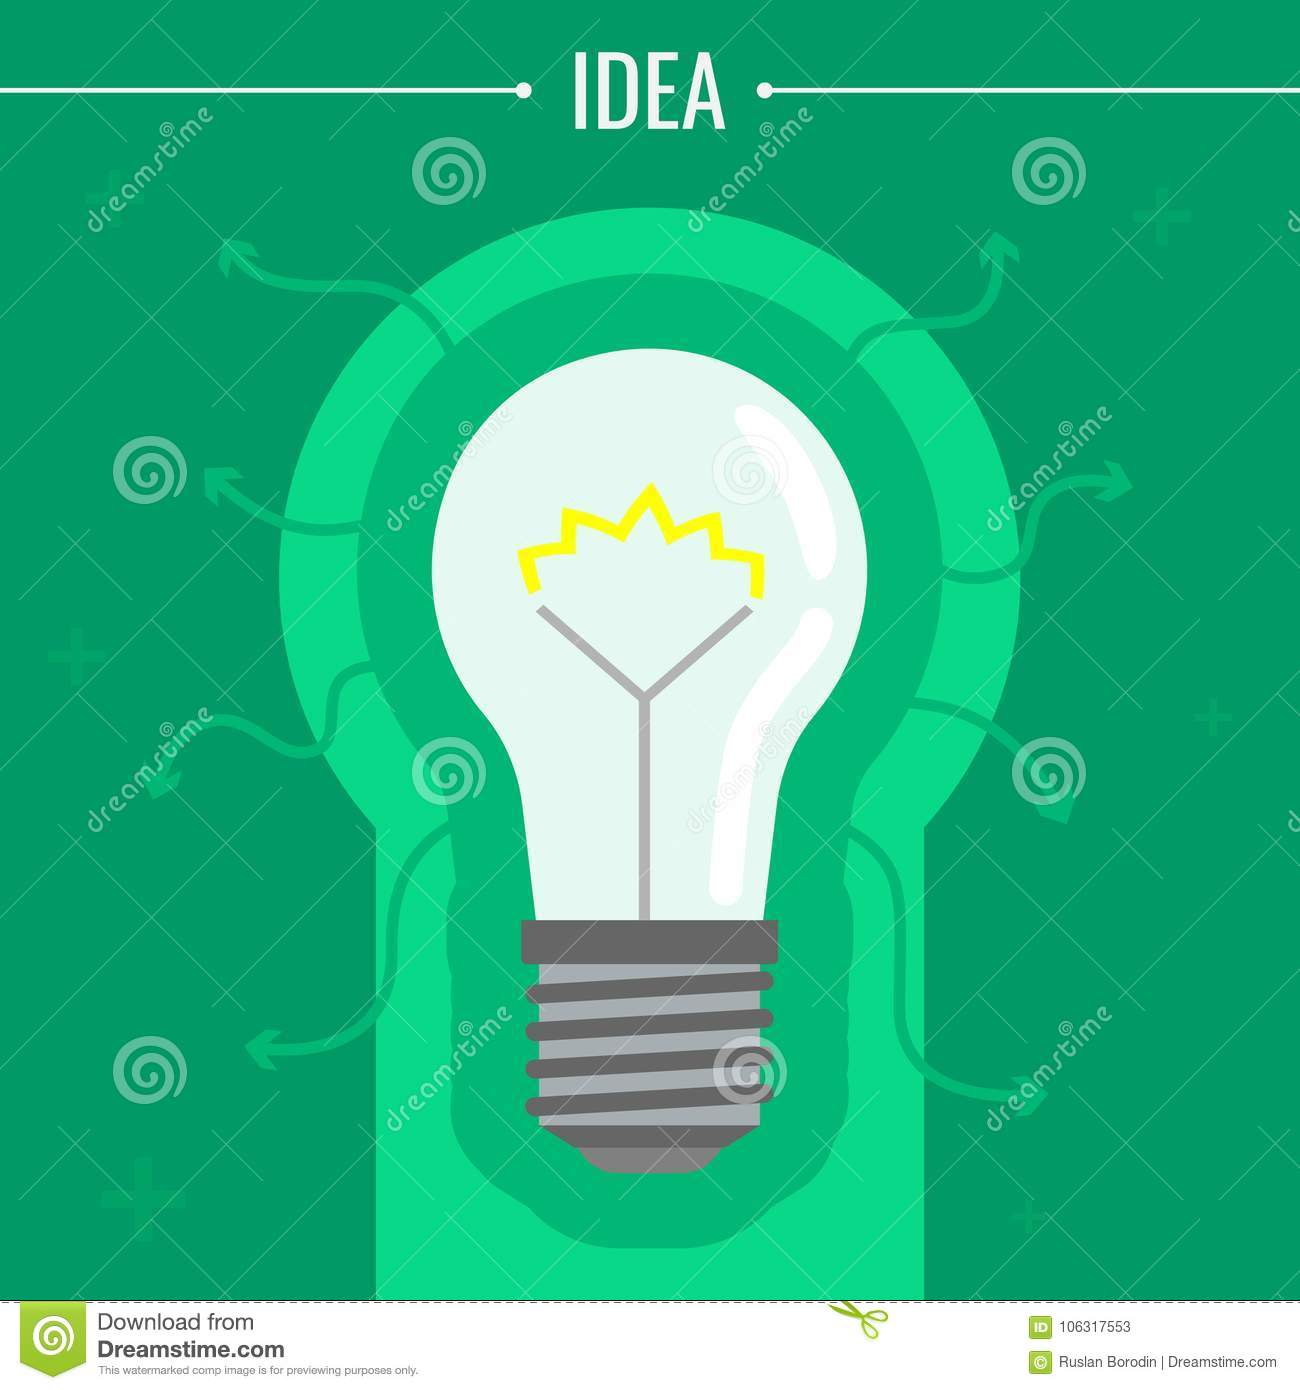 An Image Of A Glowing Light Bulb Concept Ideas Vector Diagram The Incandescent How Flourescent Download Illustration Stock